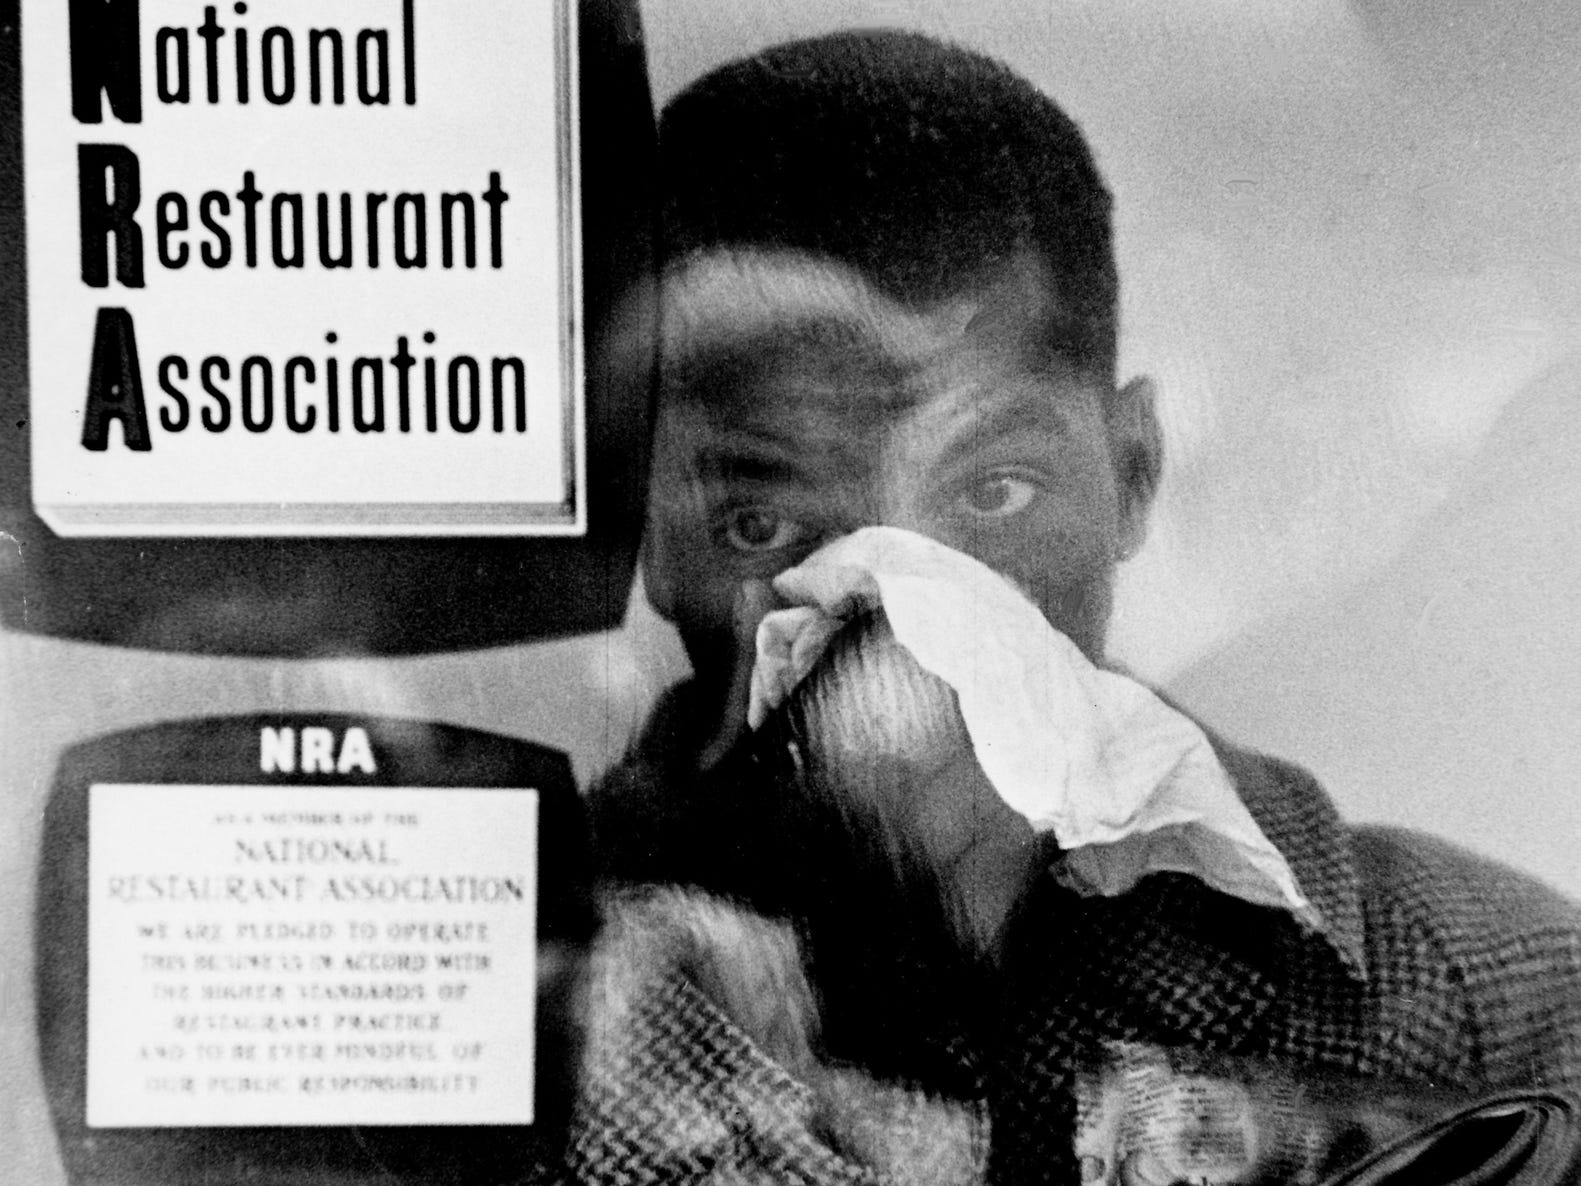 Gasping for breath, John Lewis stands inside the insecticide fume-filled Krystal lunch counter at 204 Fifth Ave. N. in downtown Nashville on Nov. 10, 1960, after the manager turned on a fumigating machine to disrupt Lewis and fellow sit-in demonstrator James Bevel.